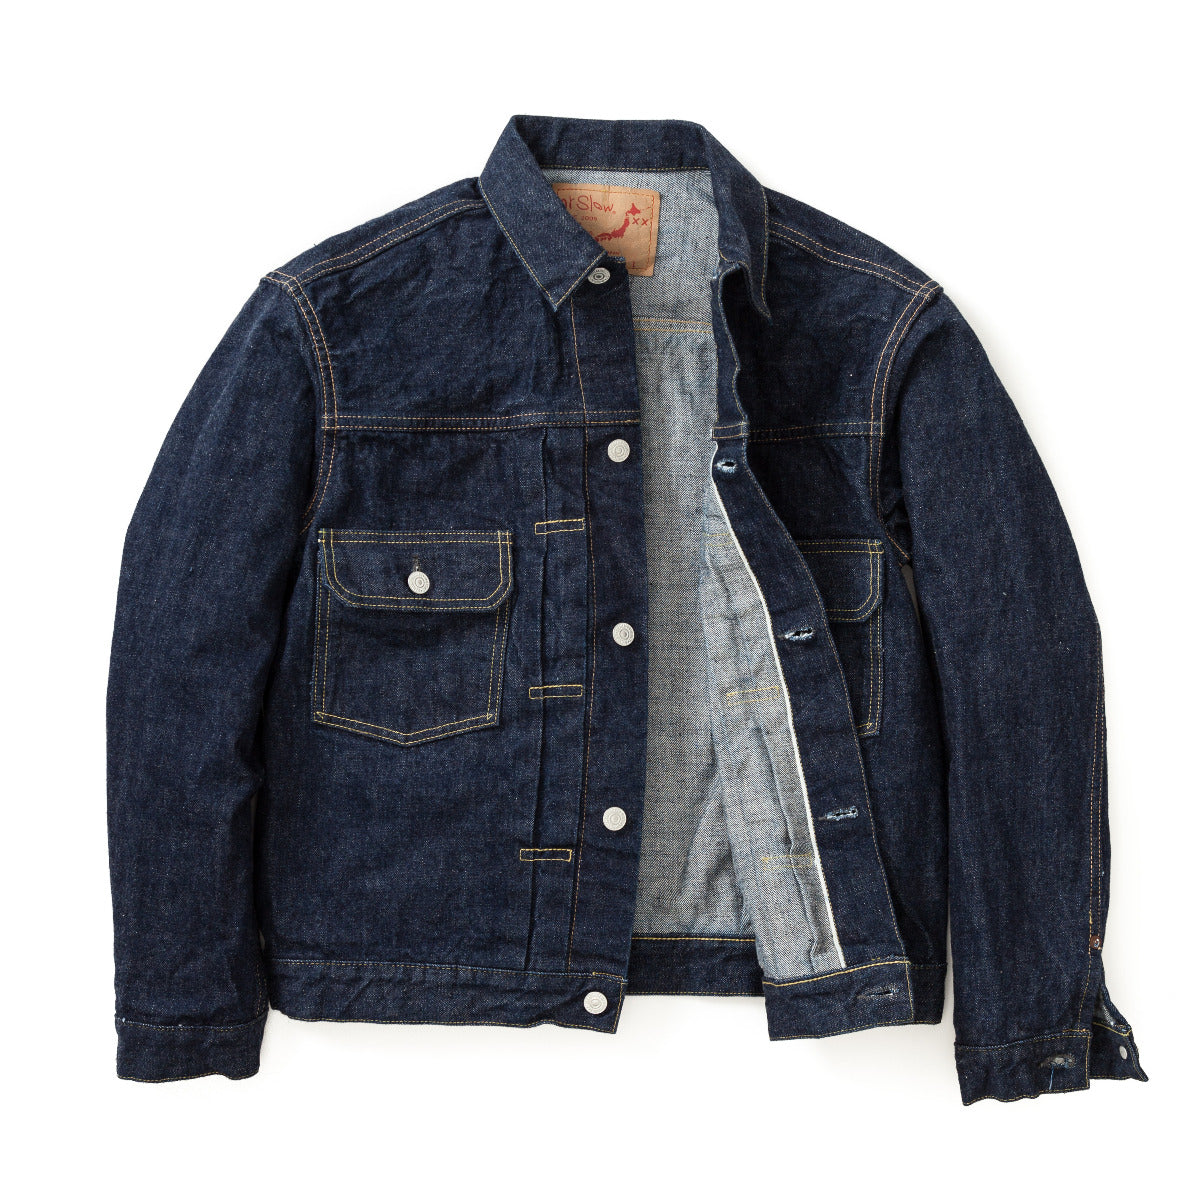 Orslow 50's Denim Jacket